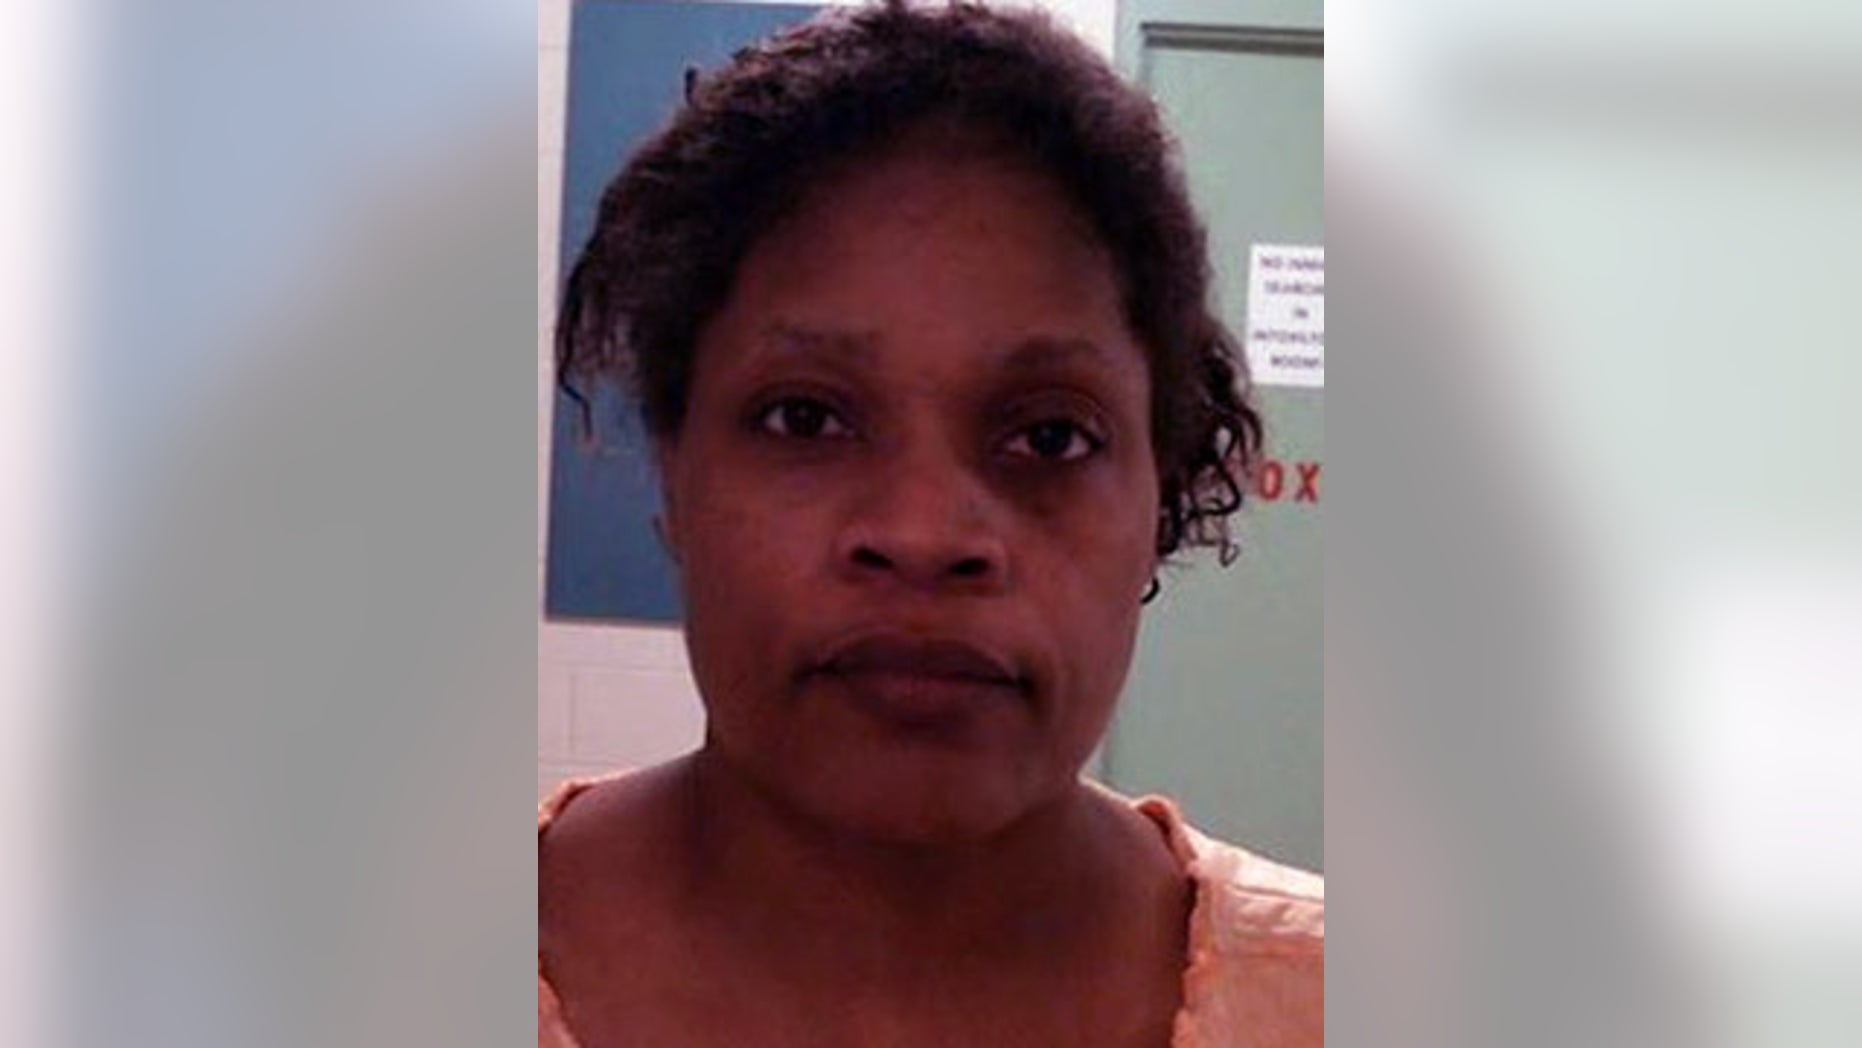 Mississippi toddler found dead in oven, grandmother charged